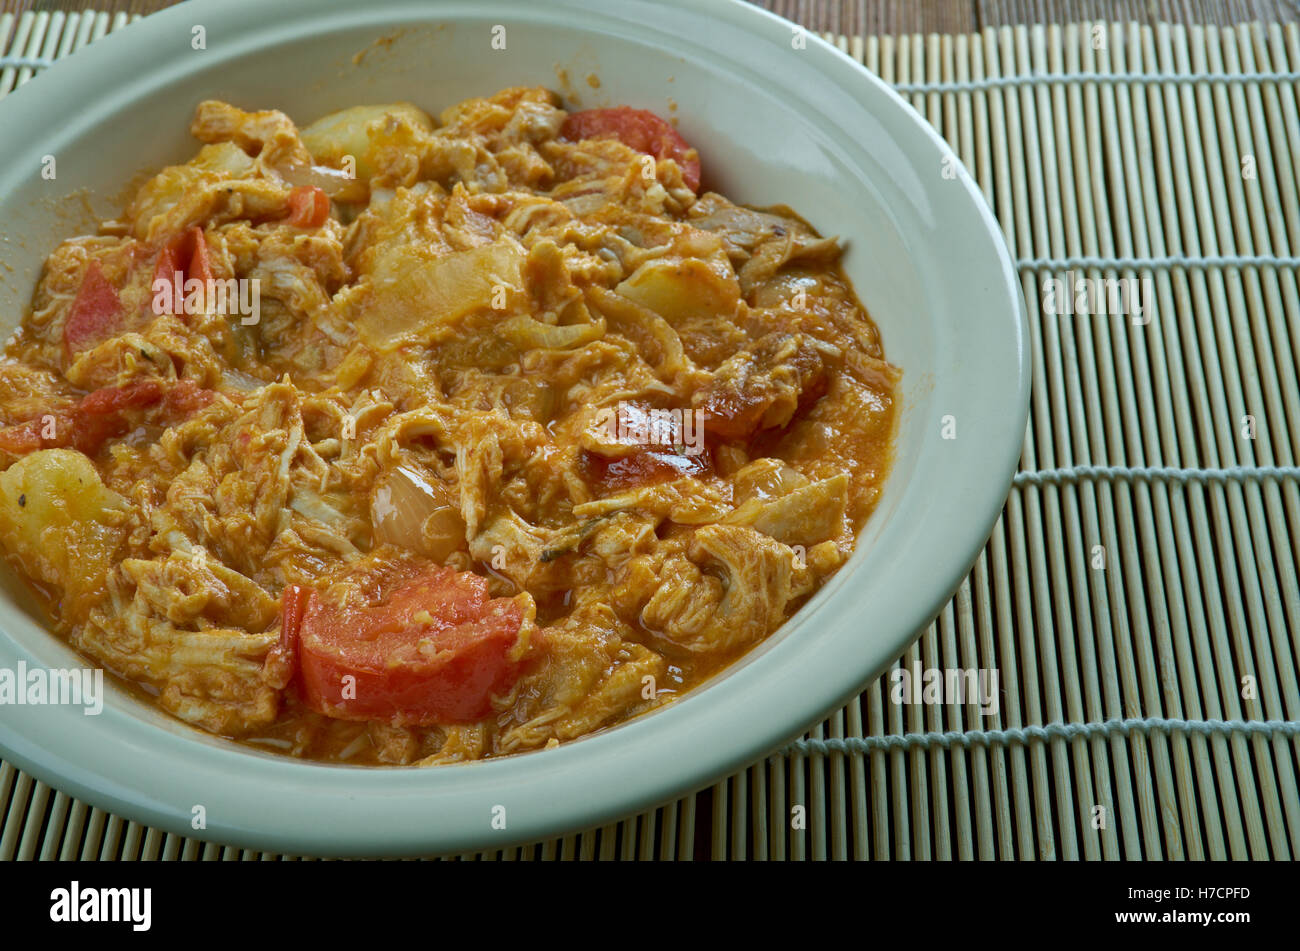 Afrikanischer Huhnertopf.South African stew with Chicken and vegetables with apricot - Stock Image